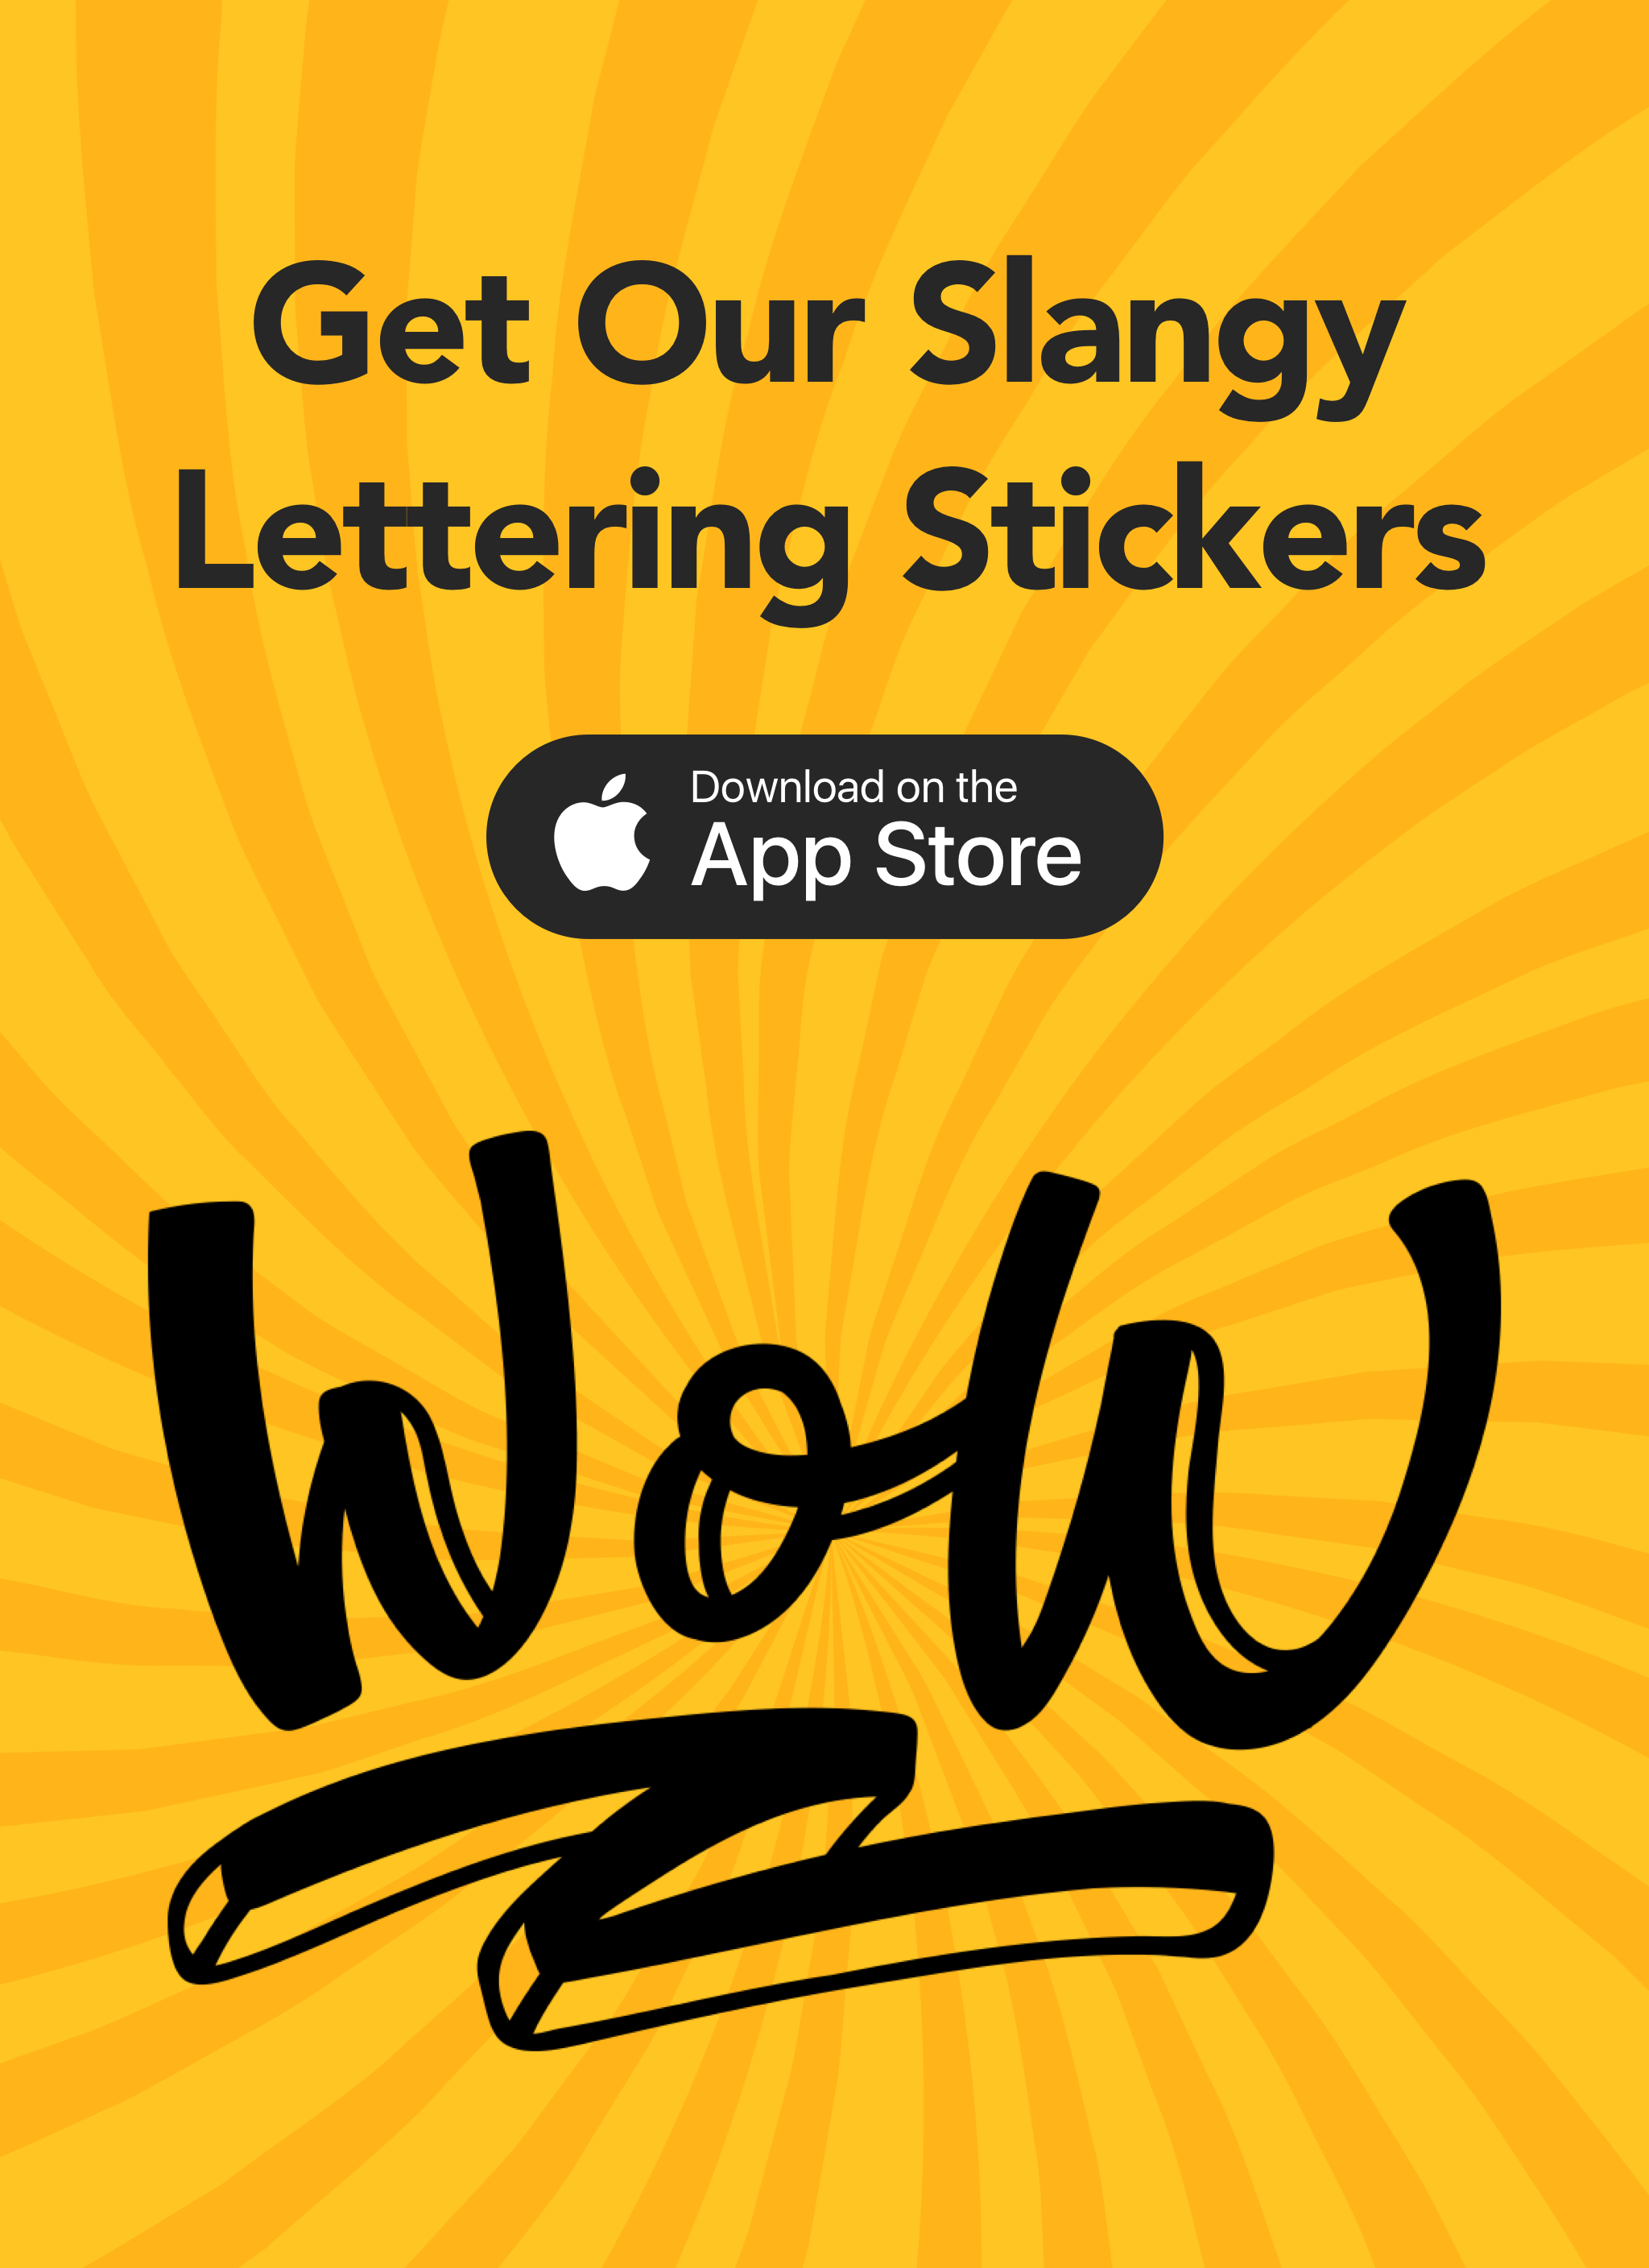 Get your WOW stickers and wait for some magic! 😉 https